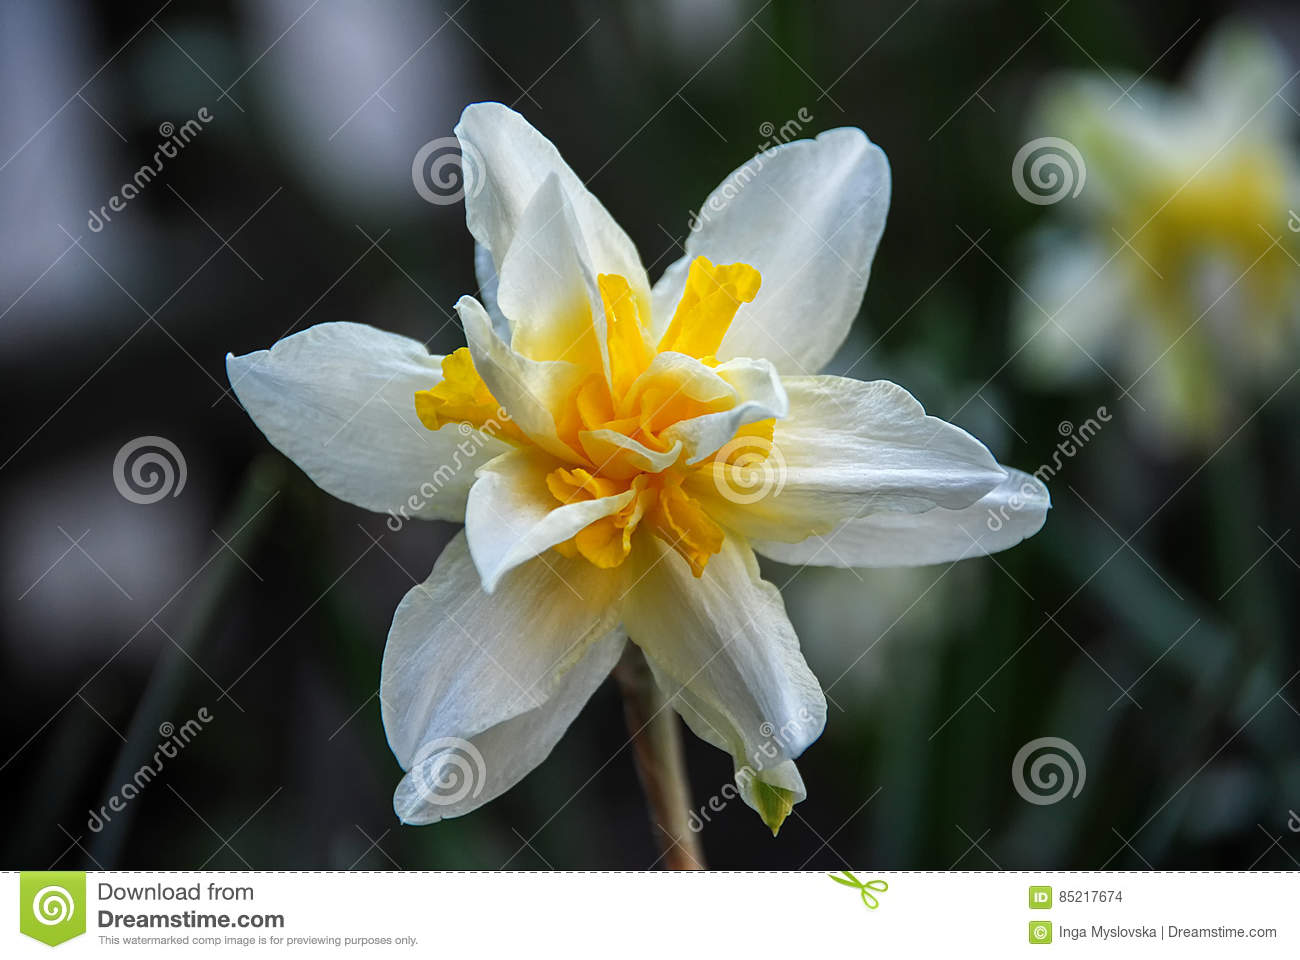 Large white orange daffodil flower